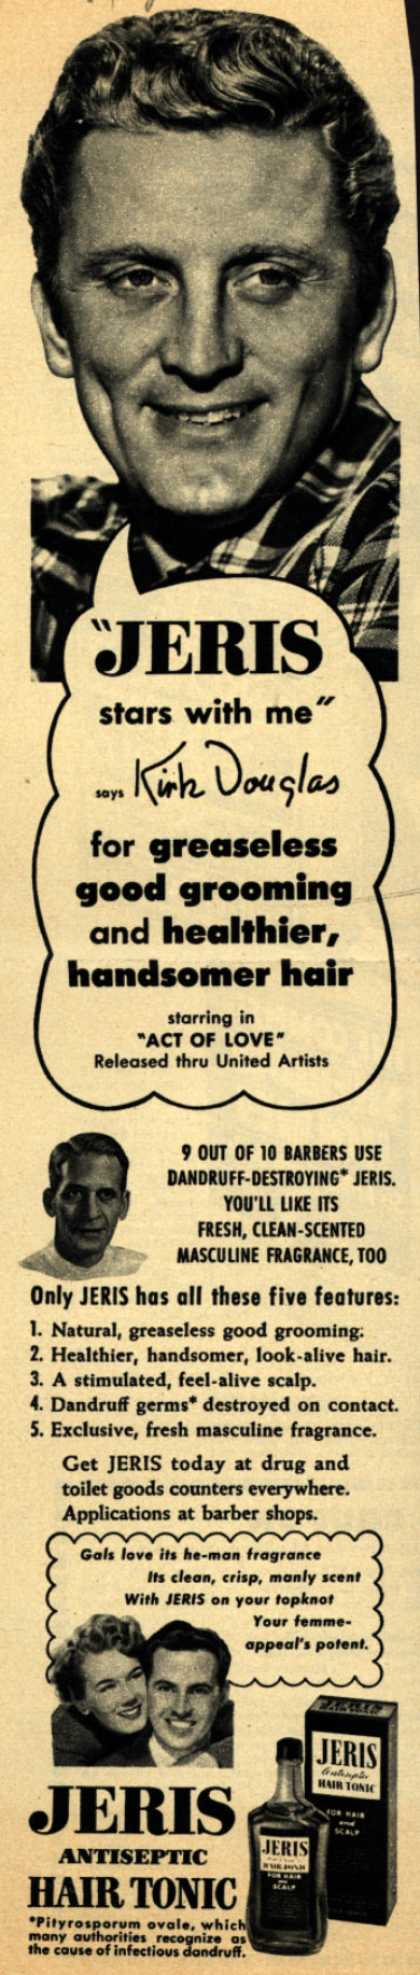 "Jeri's hair tonic – ""JERIS stars with me"" says Kirk Douglas for greaseless good grooming and healthier, handsomer hair (1953)"